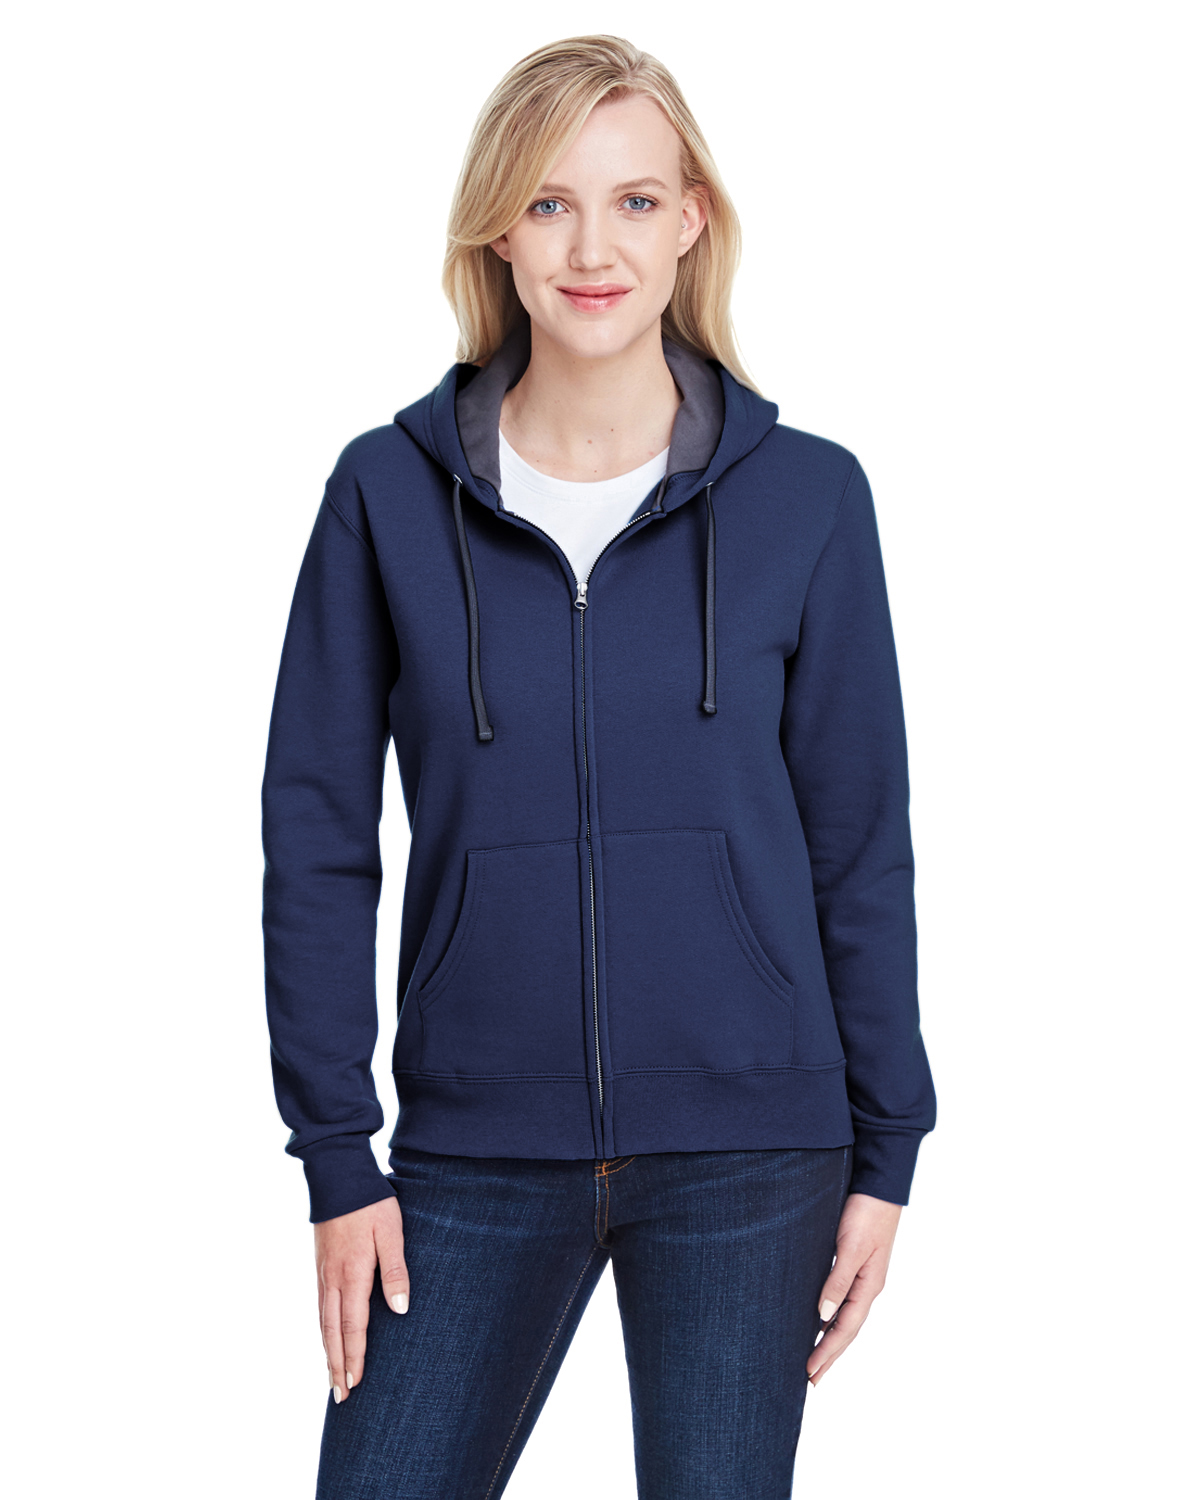 Ladies' 7.2 oz. Sofspun® Full-Zip Hooded Sweatshirt